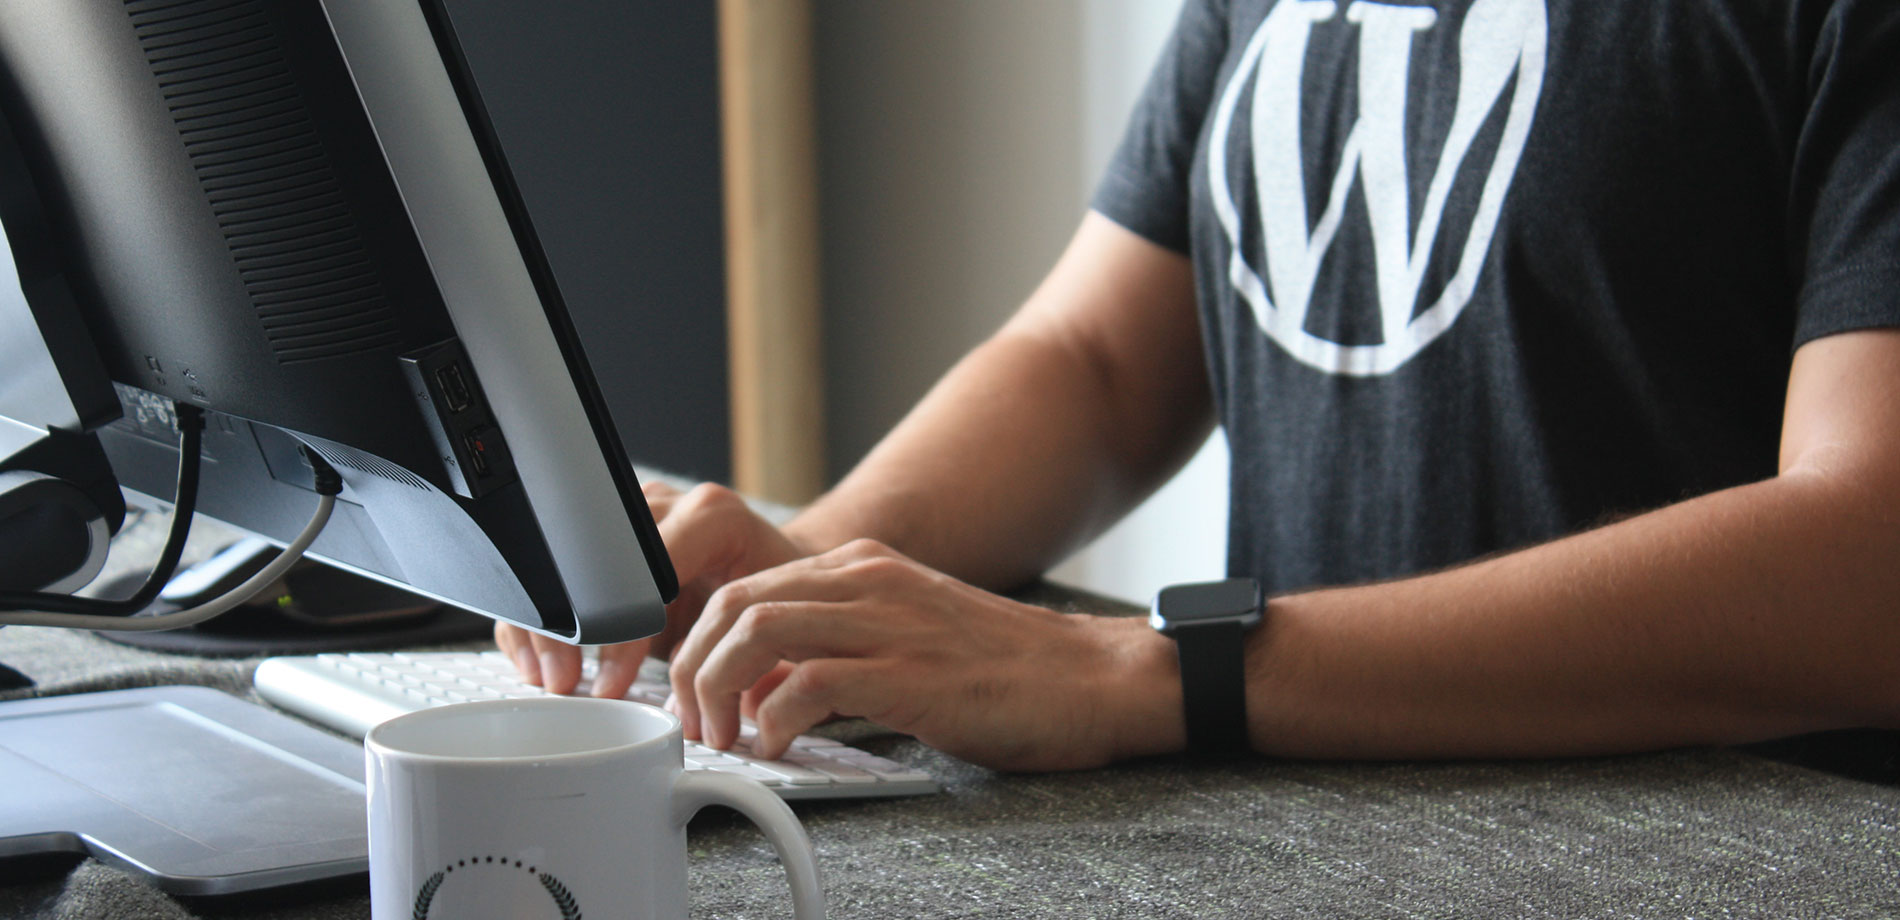 WordPress, Desarrollo Web, CMS